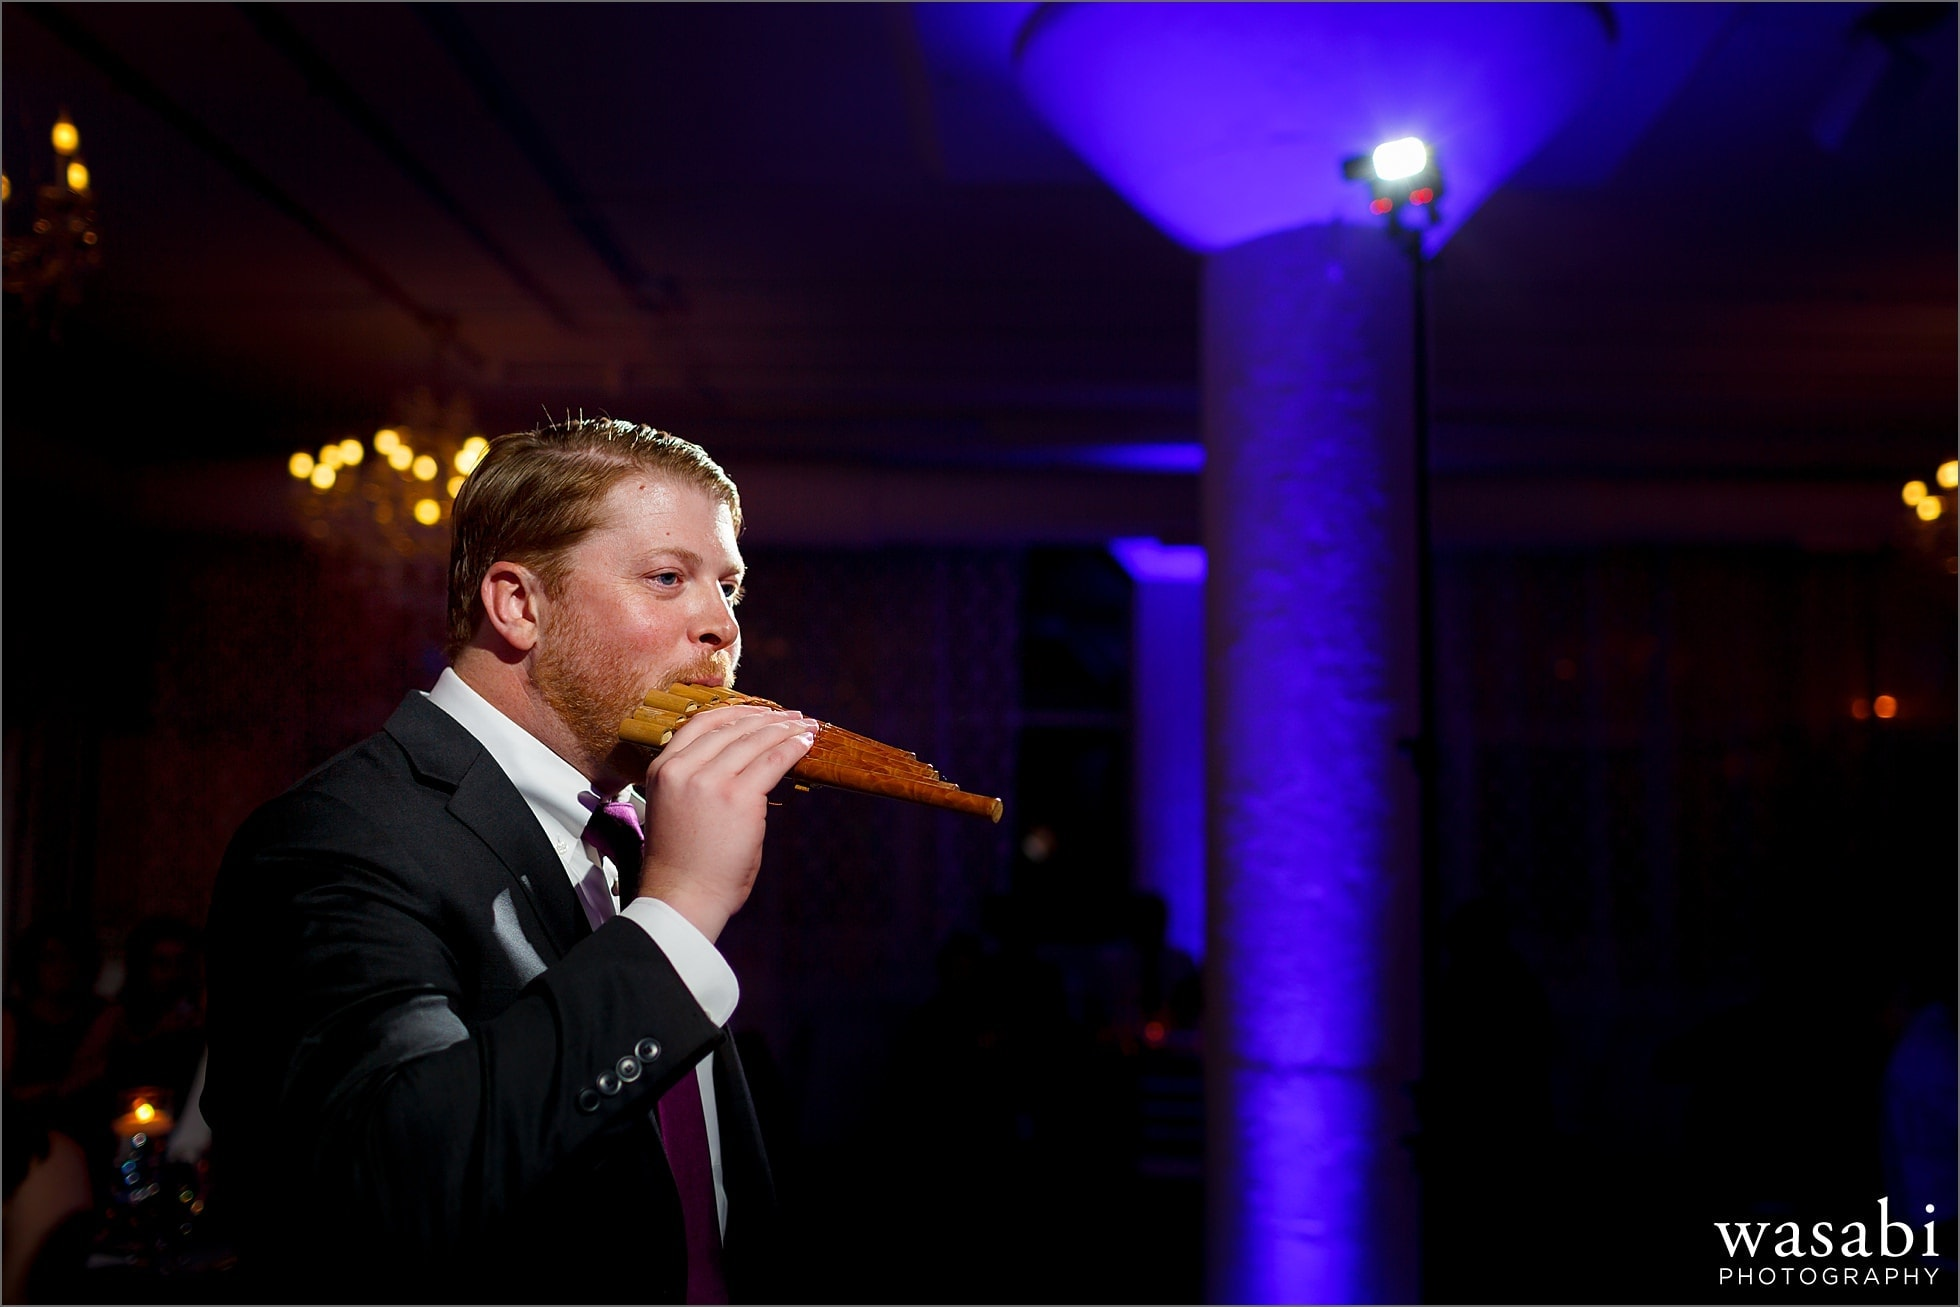 groomsmen plays pan flute during toast at wedding reception at Room 1520 in Chicago